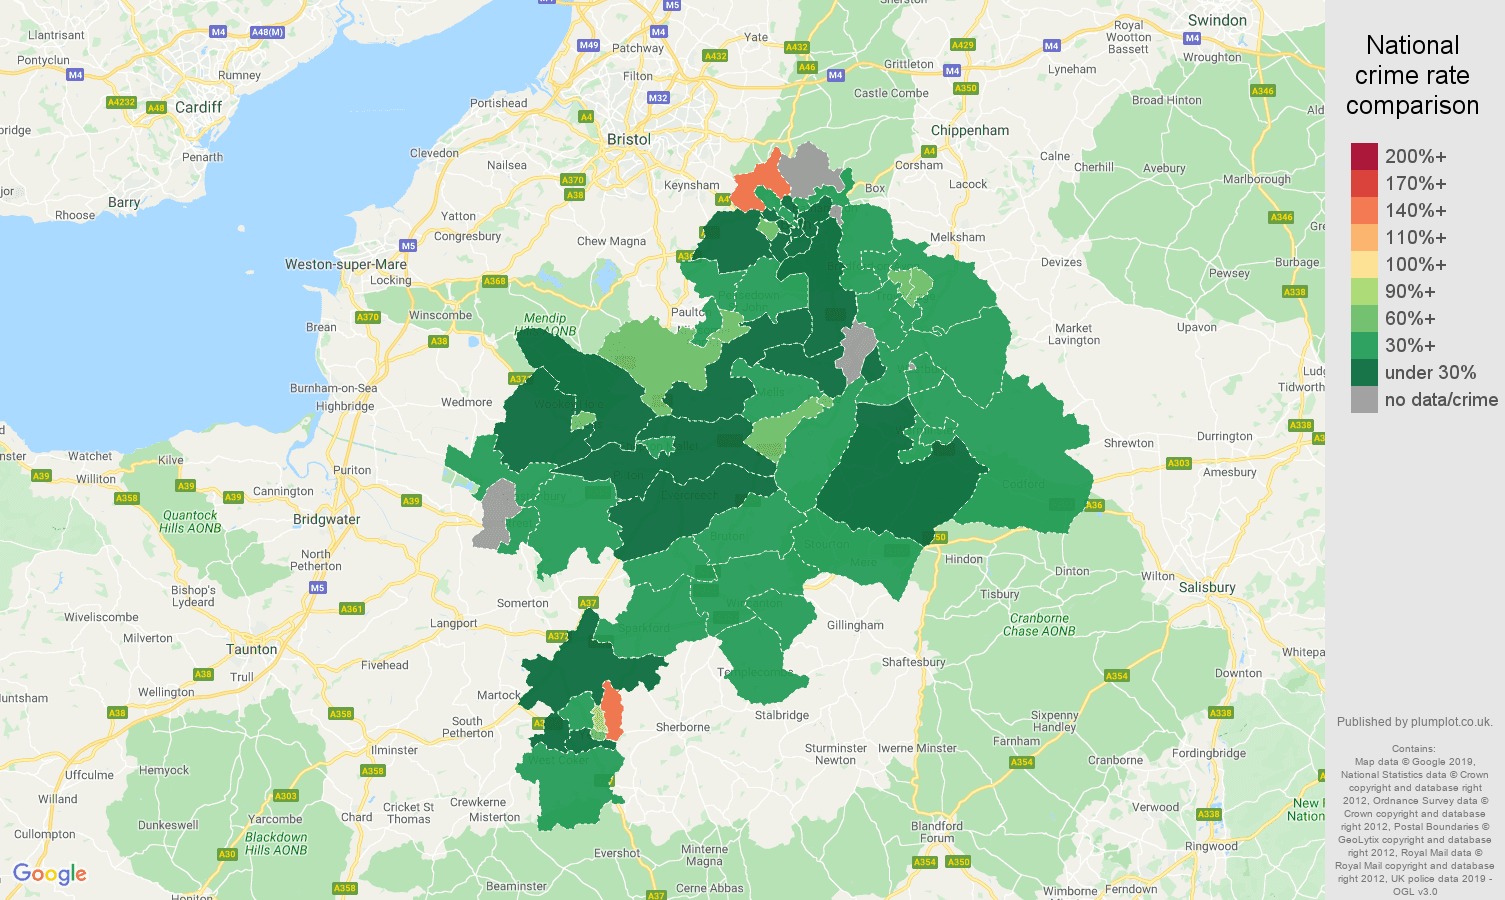 Bath other crime rate comparison map